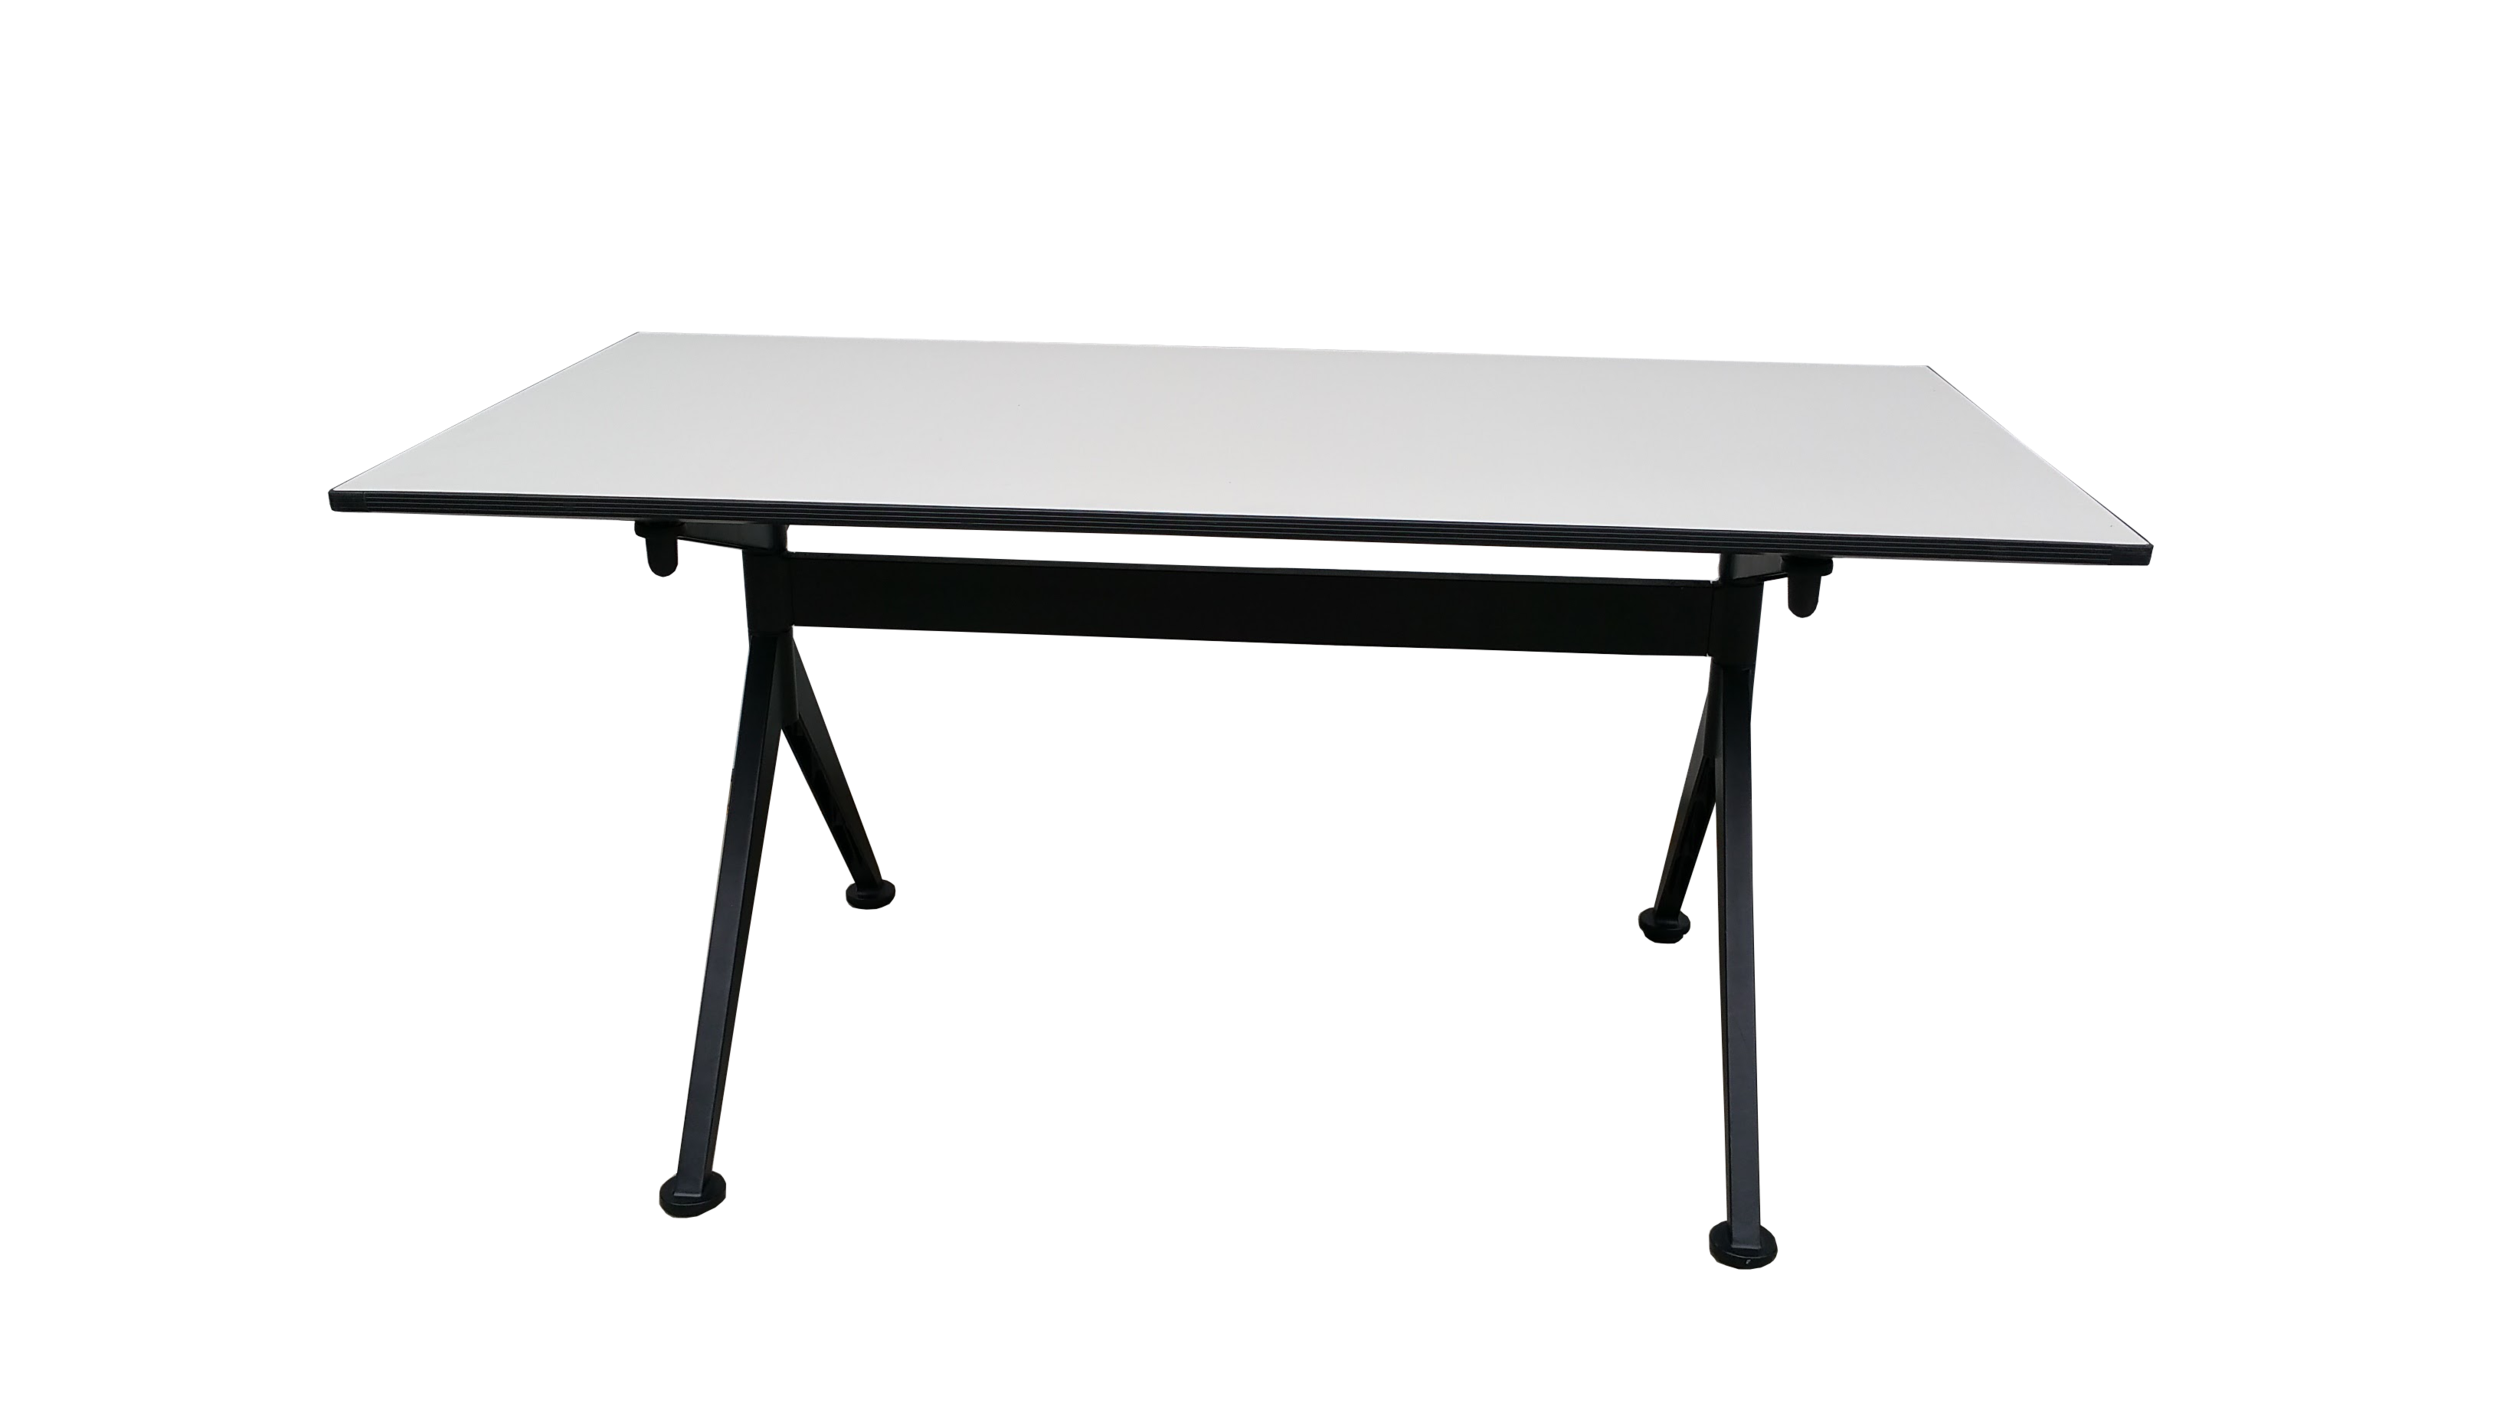 Vecto Folding Table /Desk